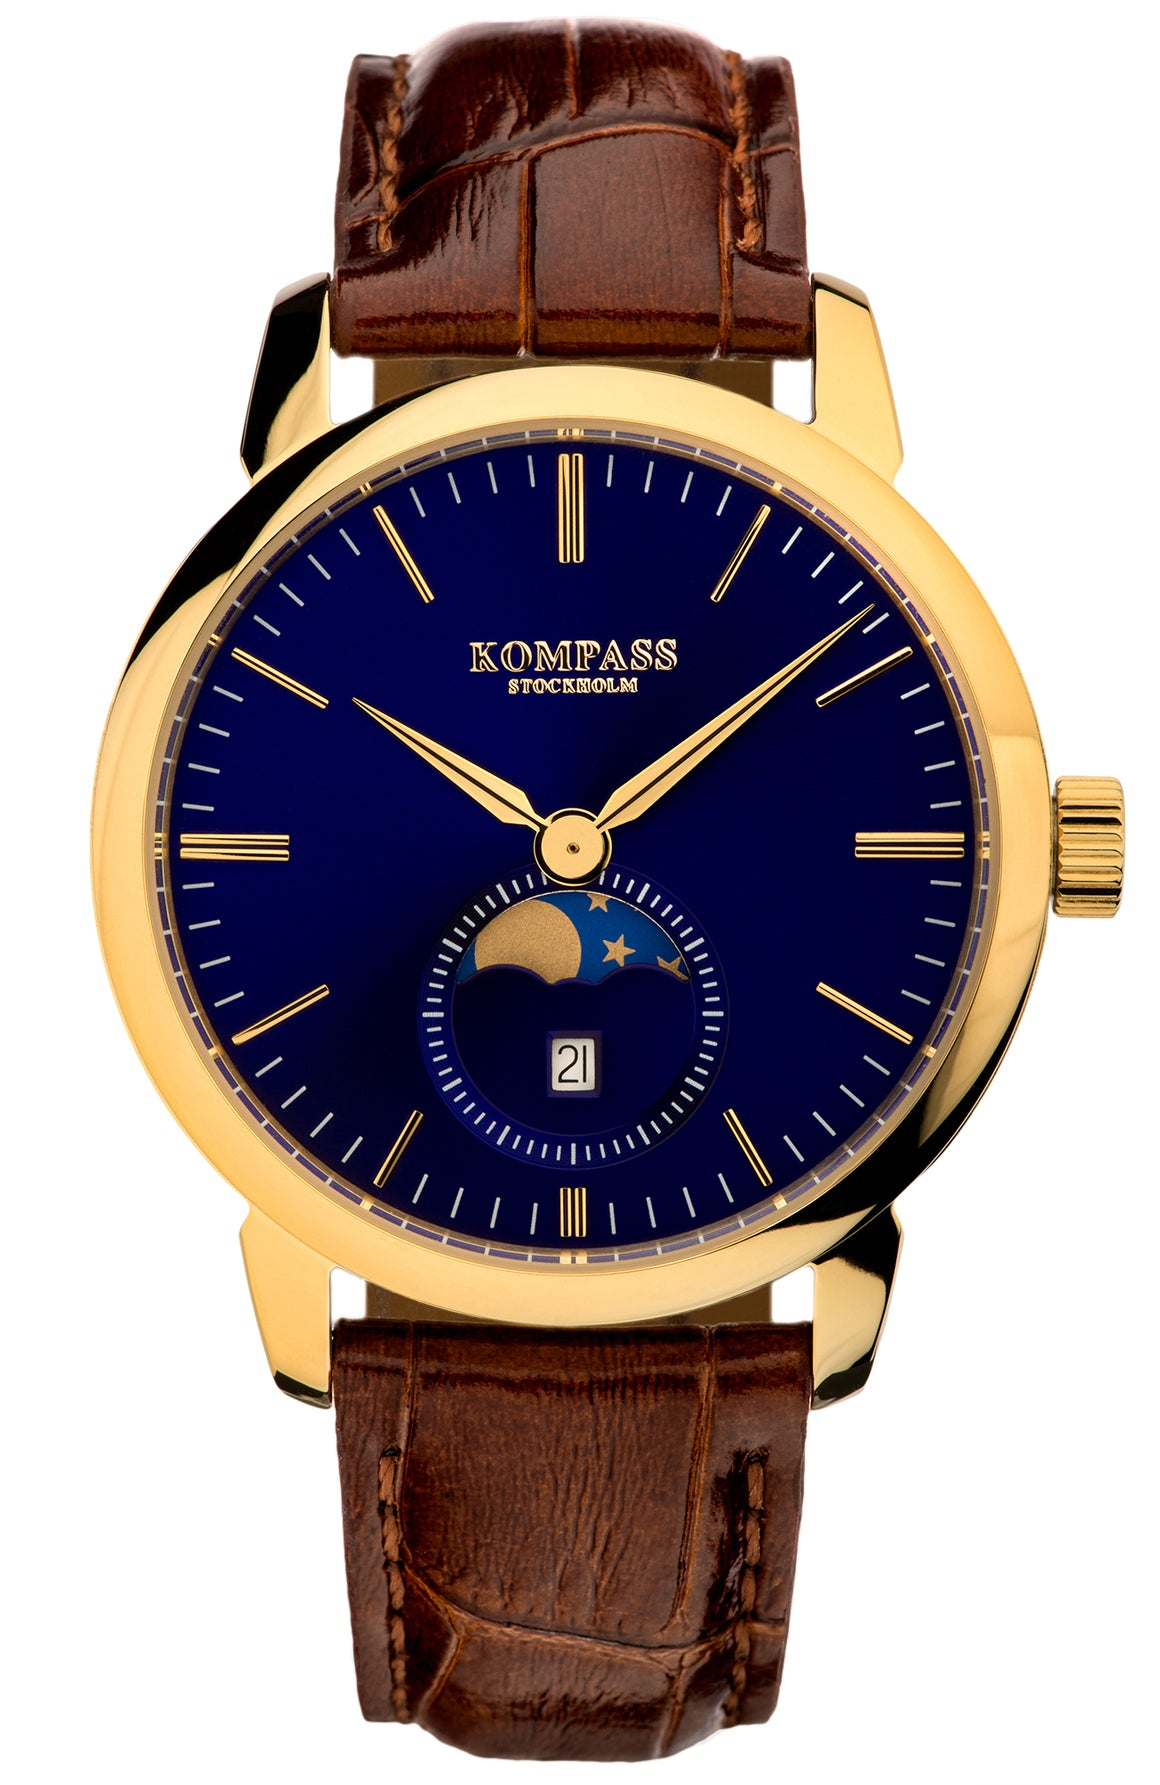 KOMPASS GRAND MOON PHASE BLUE DIAL BROWN STRAP